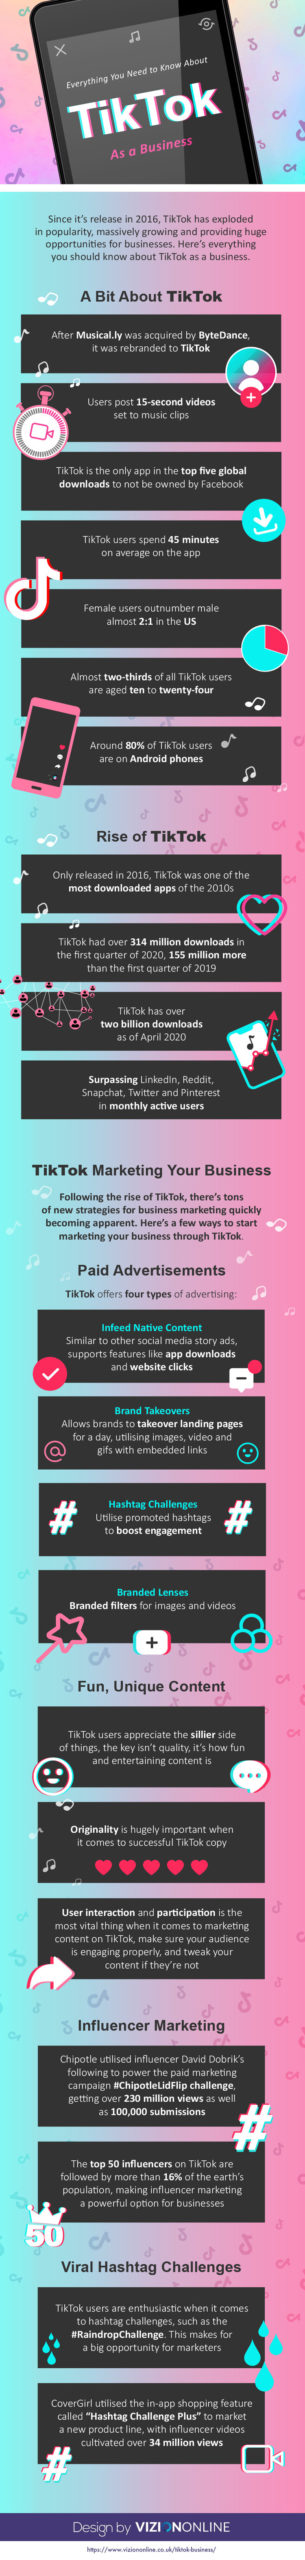 Everything You Need to Know About TikTok as a Business